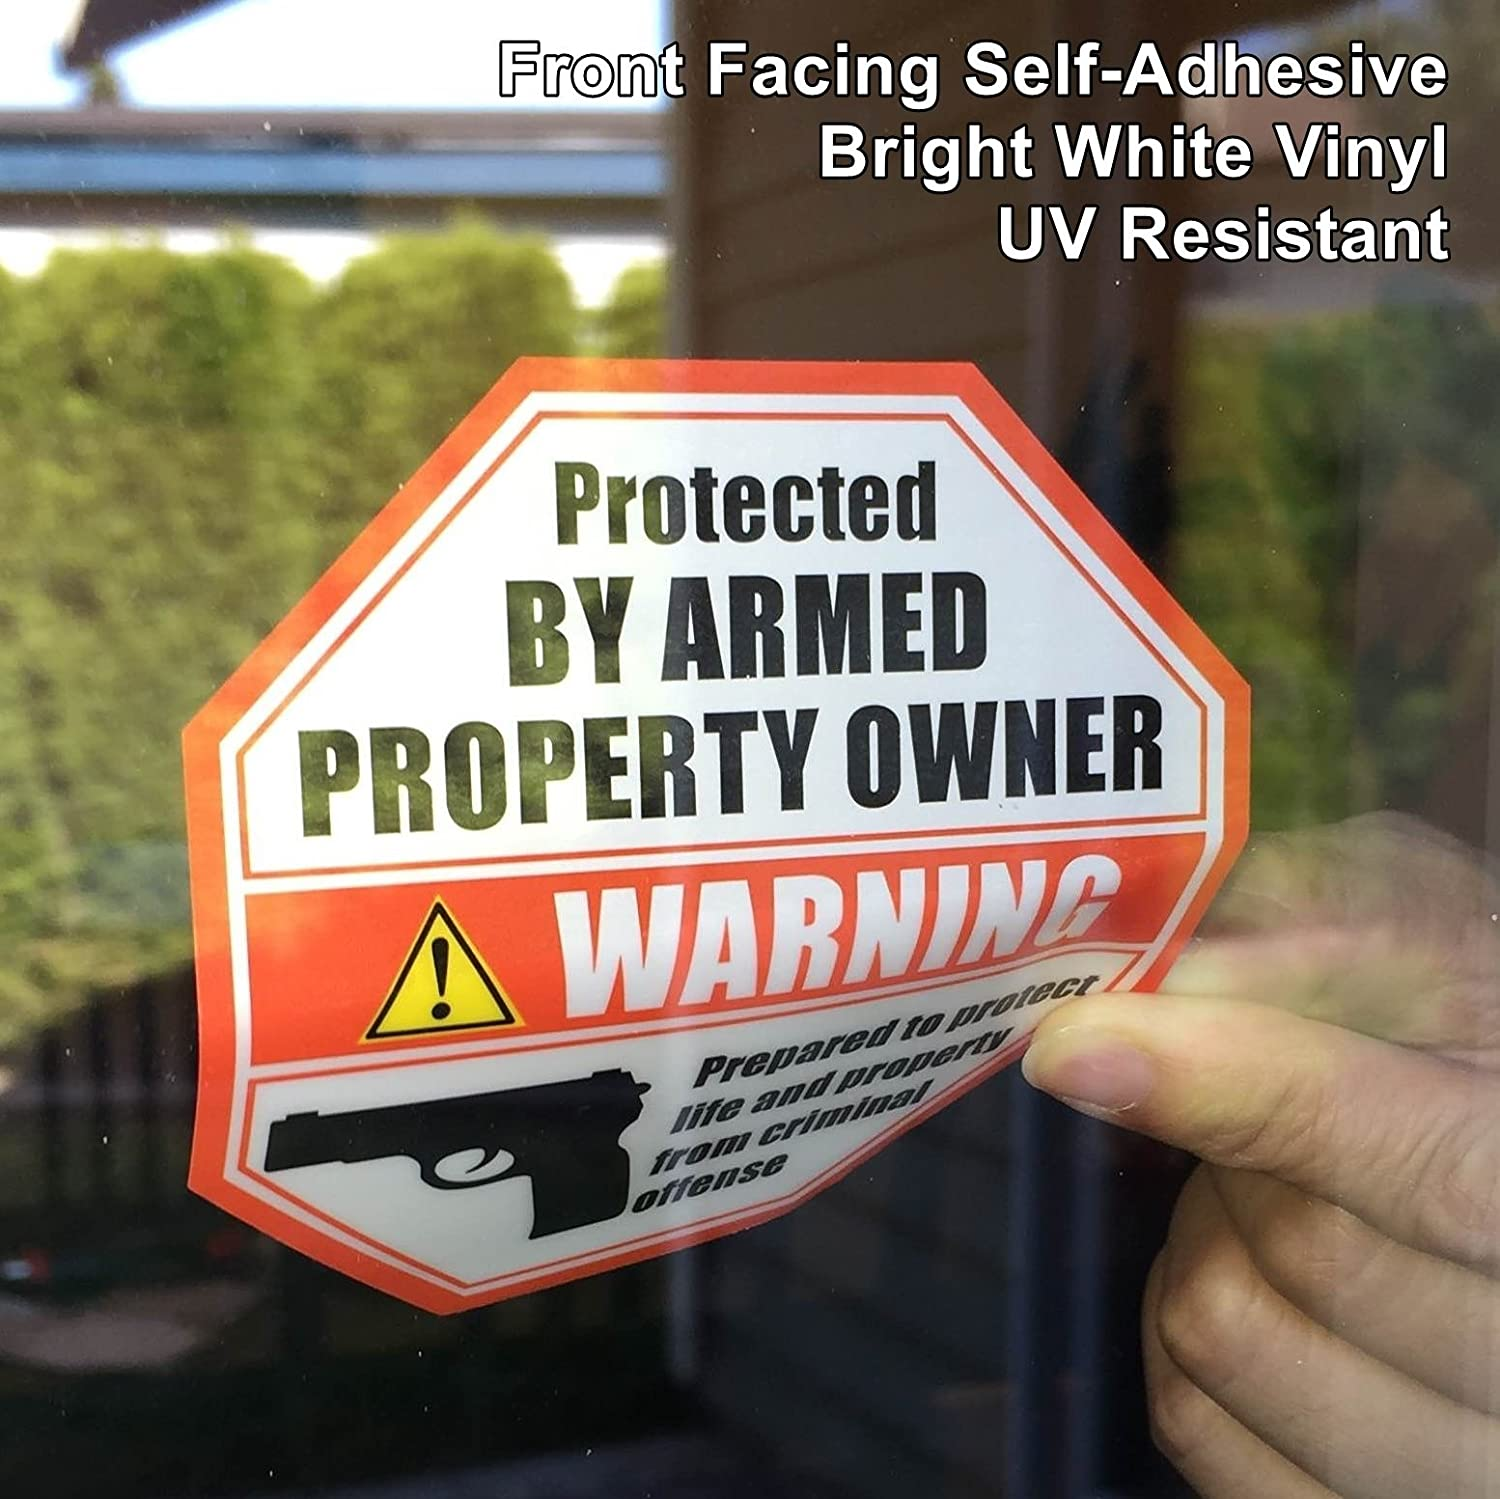 **Front Facing Self Adhesive Vinyl** (4 Pack) 89mm X 89mm PROTECTED BY ARMED PROPERTY OWNER Home Business Window Door Gun Handgun Warning Alert Sticker Decals.